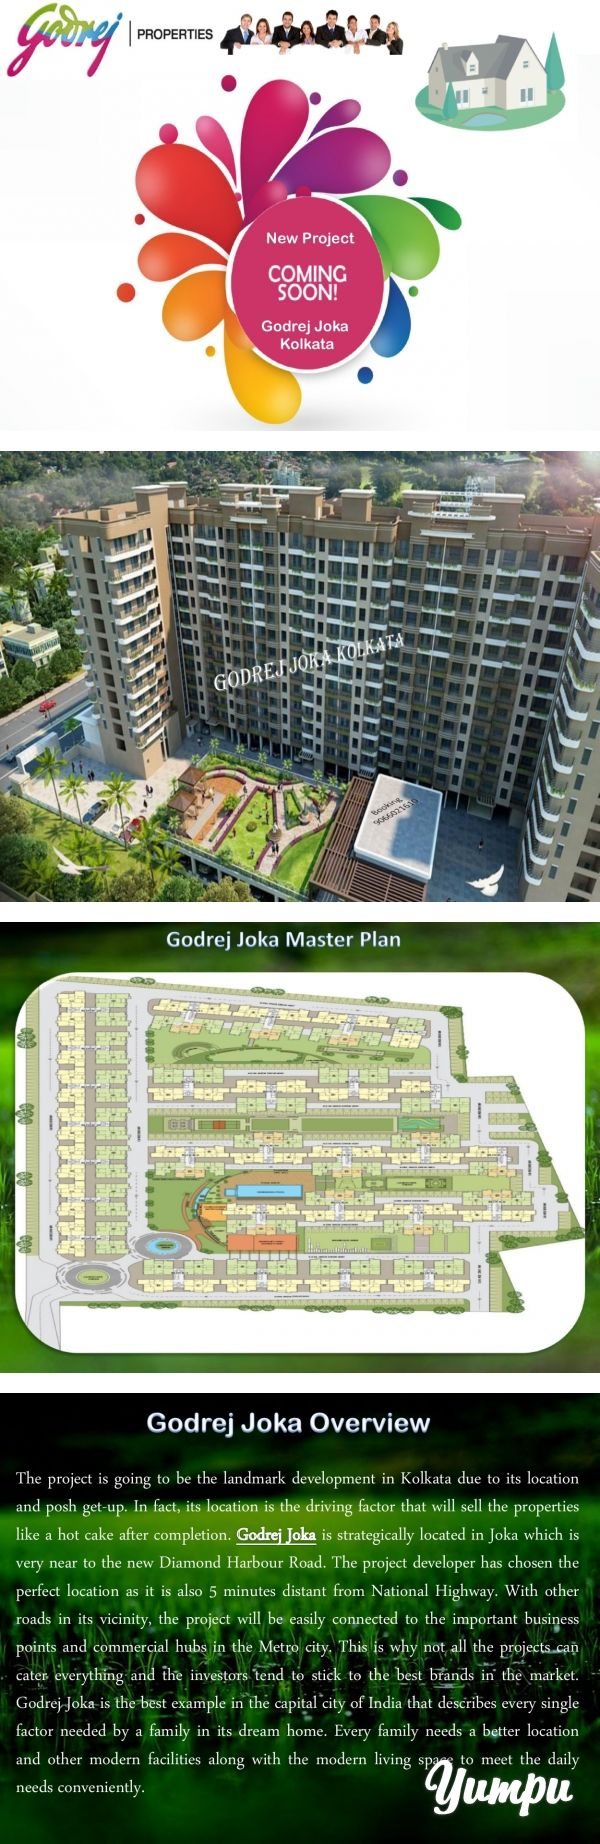 Godrej Joka - Residential 3 BHK Flat in Kolkata - Magazine with 10 pages: Godrej developer developed new luxurious property Godrej Joka under the supervision of expert team along with civil engineers, manufacturing zone, co-workers contractors and take permission by the government body.According to this group, they mainly focus on creative ideas and modern thoughts to build their luxurious residential apartment in the silicon valley of India.For more Detail Information Godrej Joka Visit…